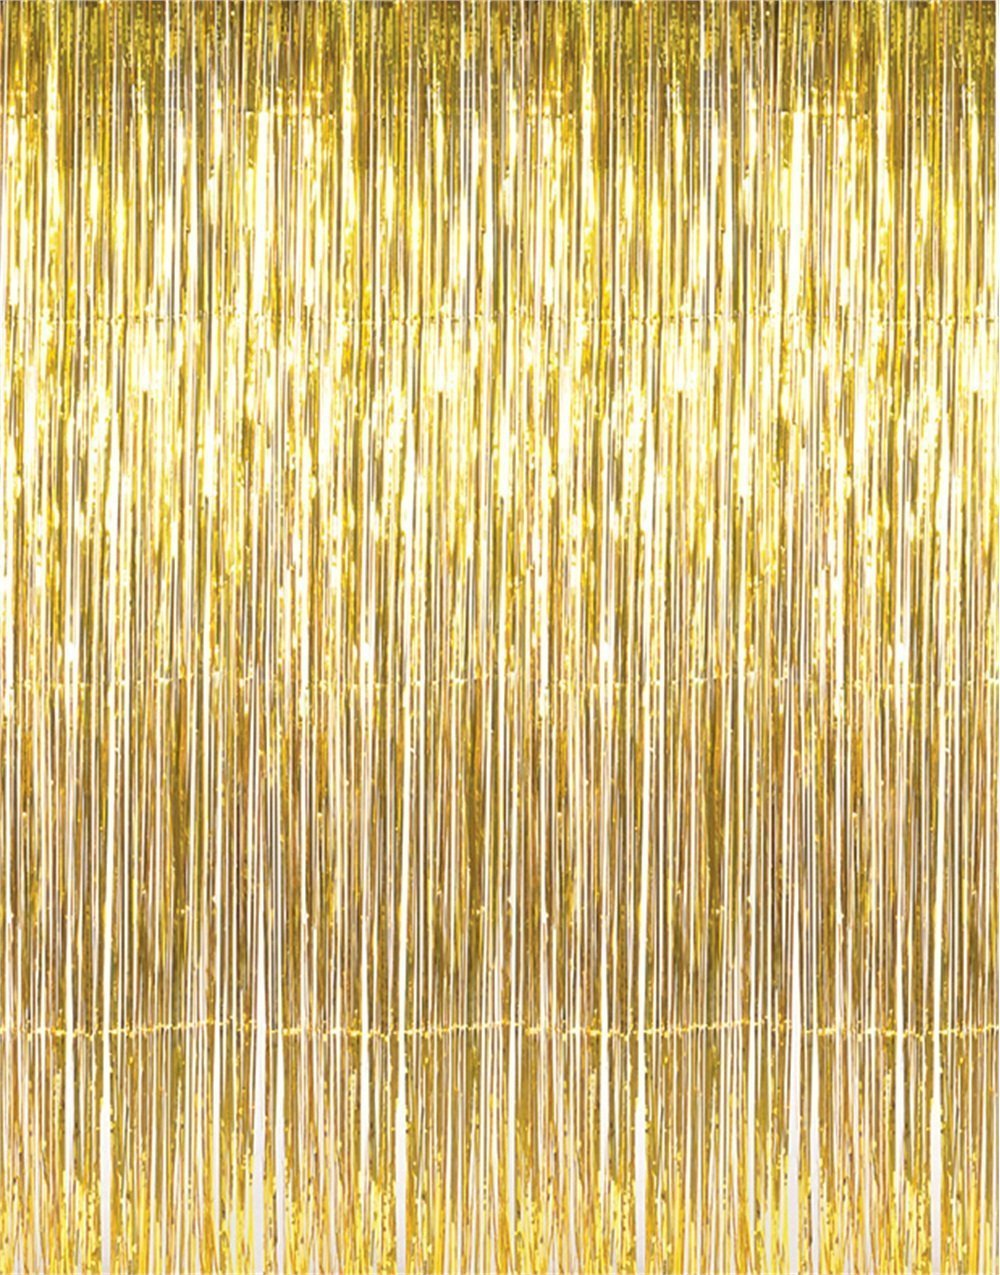 GOER 3.2 ft x 9.8 ft Metallic Tinsel Foil Fringe Curtains for Party Photo Backdrop Wedding Decor (Gold,1 pack) by GOER